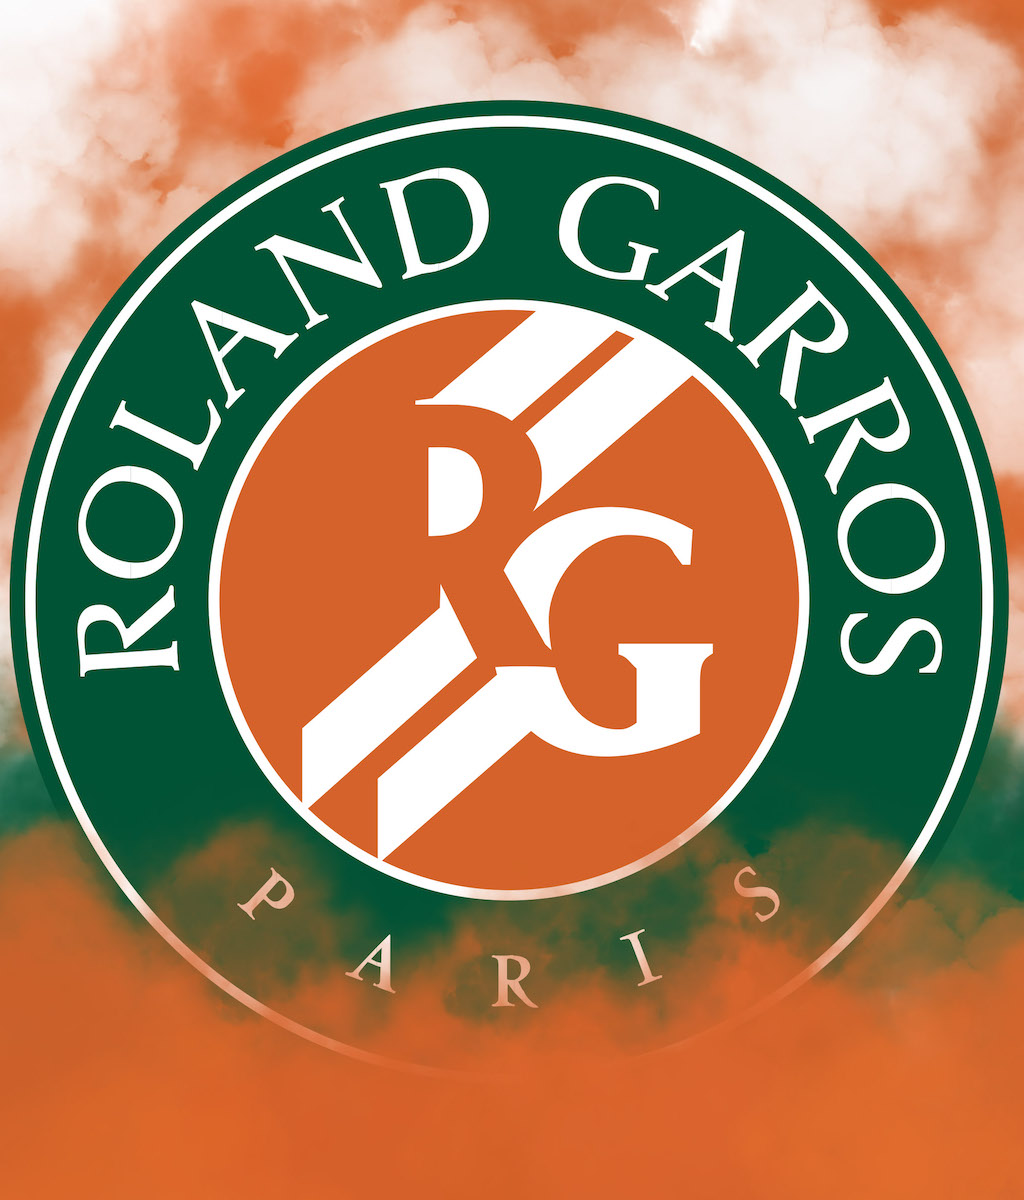 Rolland.Garros.2016.Womens.Semifinals.S.Williams.vs.Bertens.2160p.UHDTV.DD.5.1.HEVC